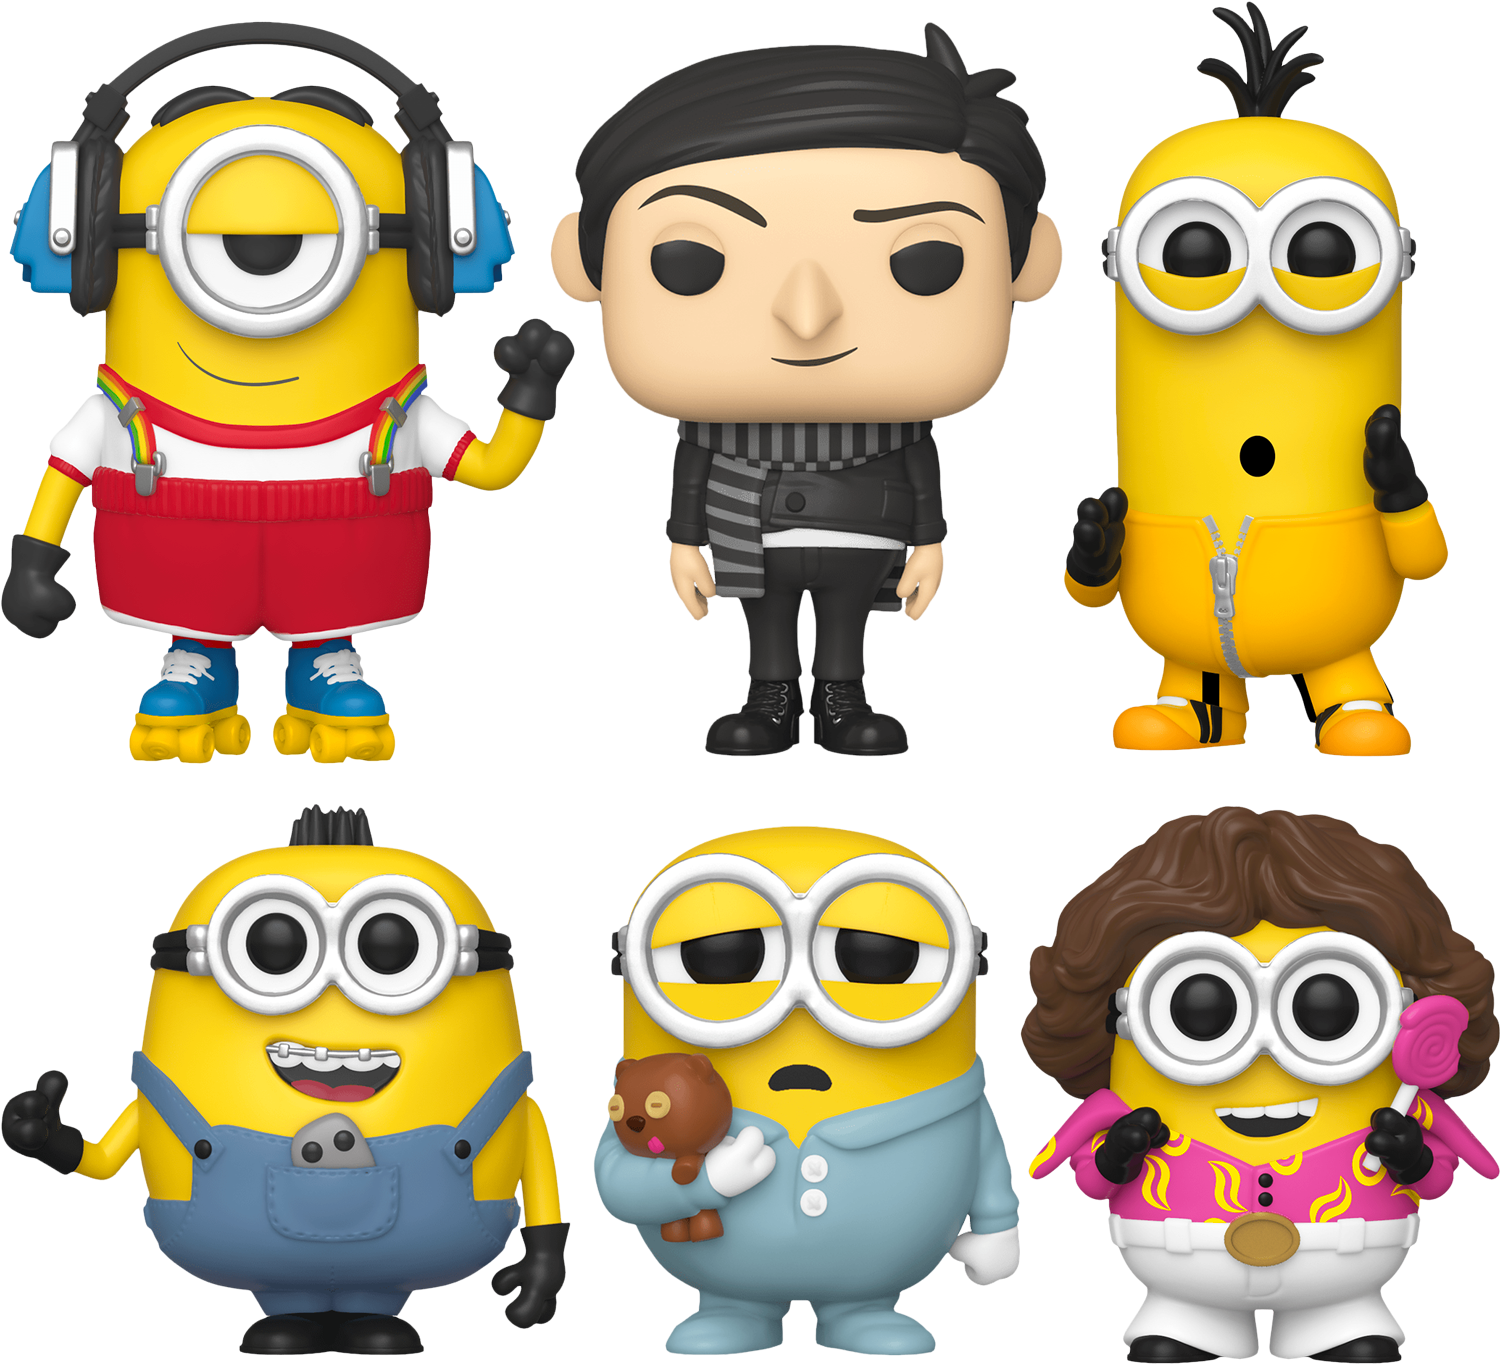 Minions 2: The Rise Of Gru - Gru Know You Want This Pop! Vinyl Bundle (Set of 6)